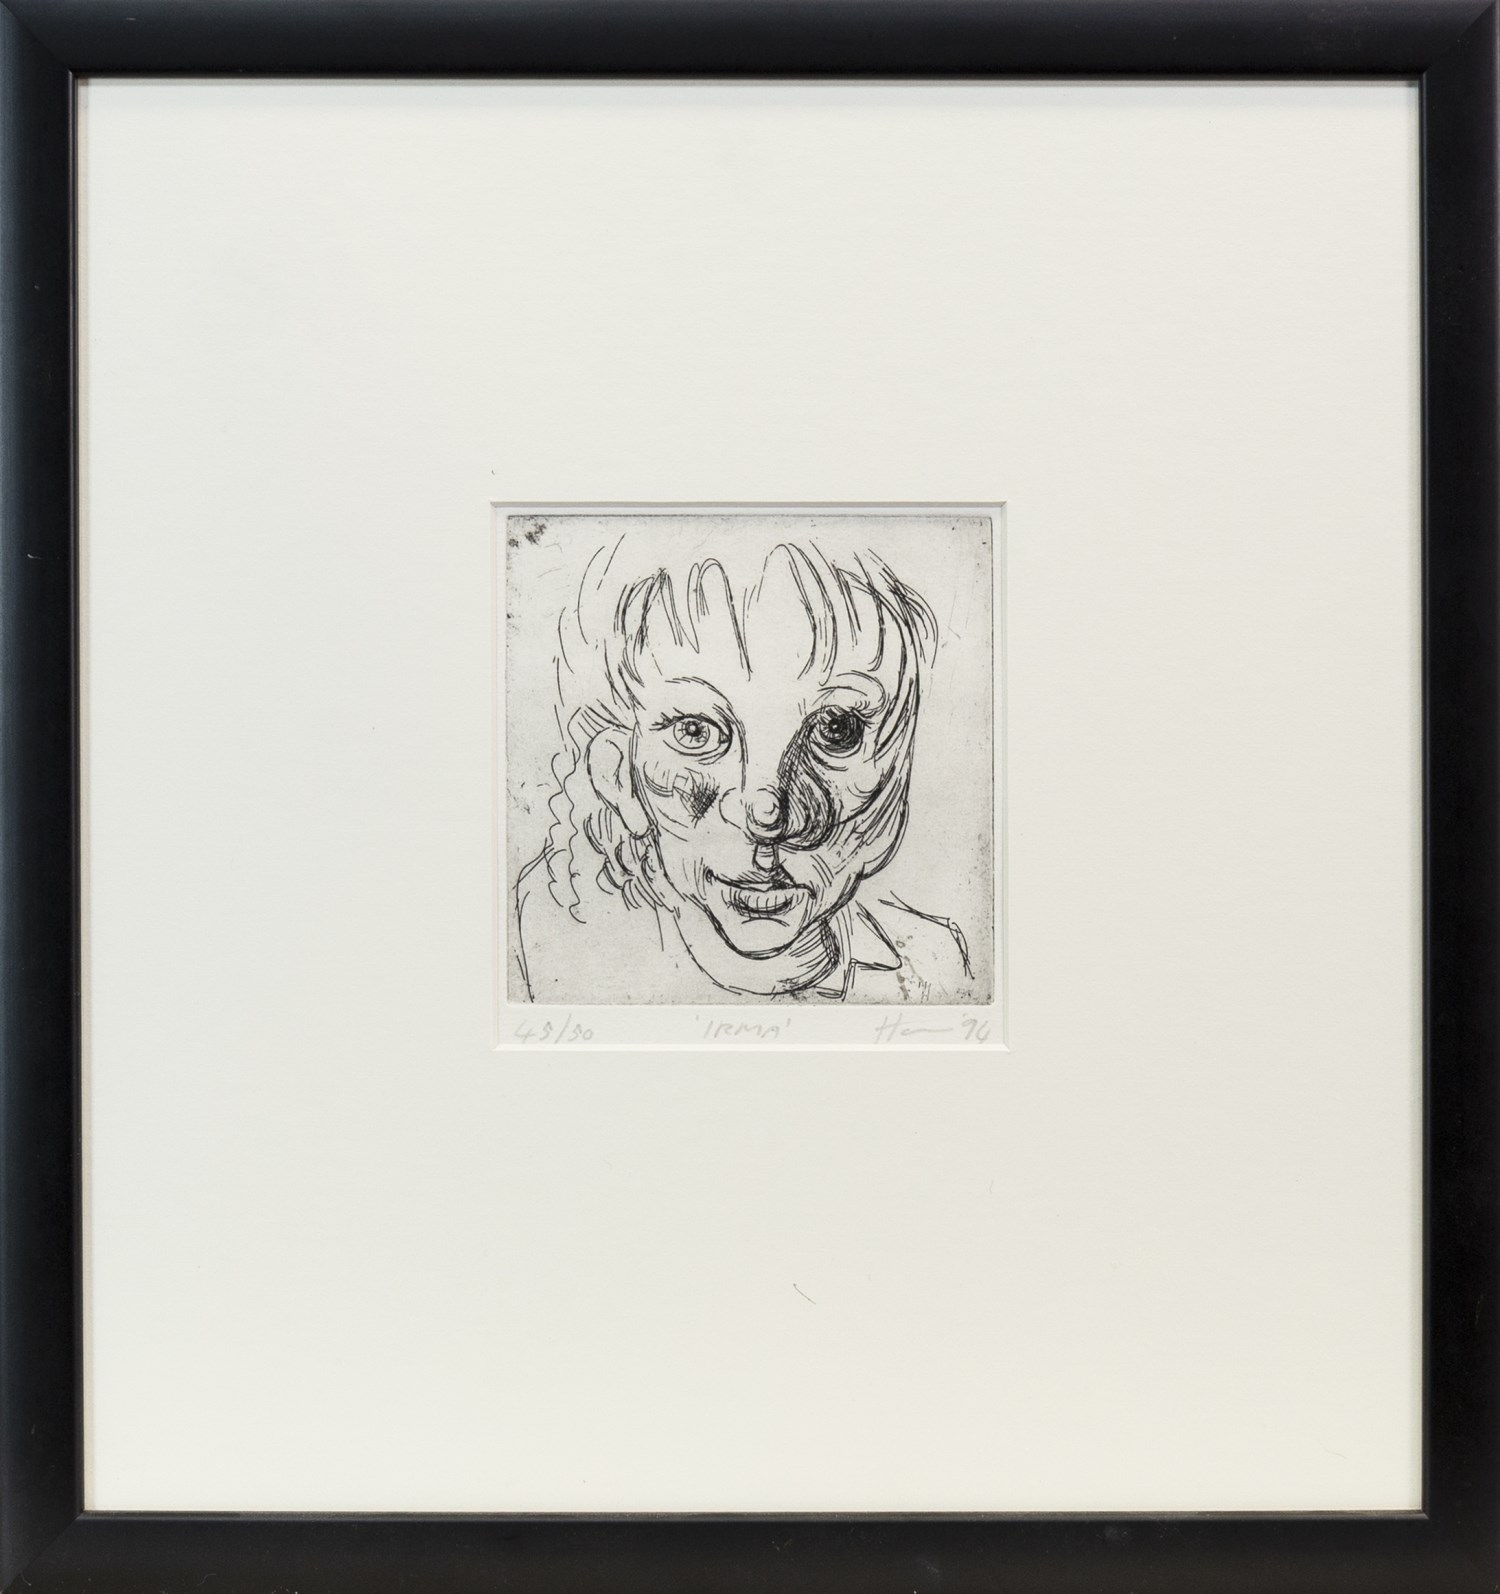 Lot 85 - IRMA, A LIMITED EDITION DRYPOINT BY PETER HOWSON